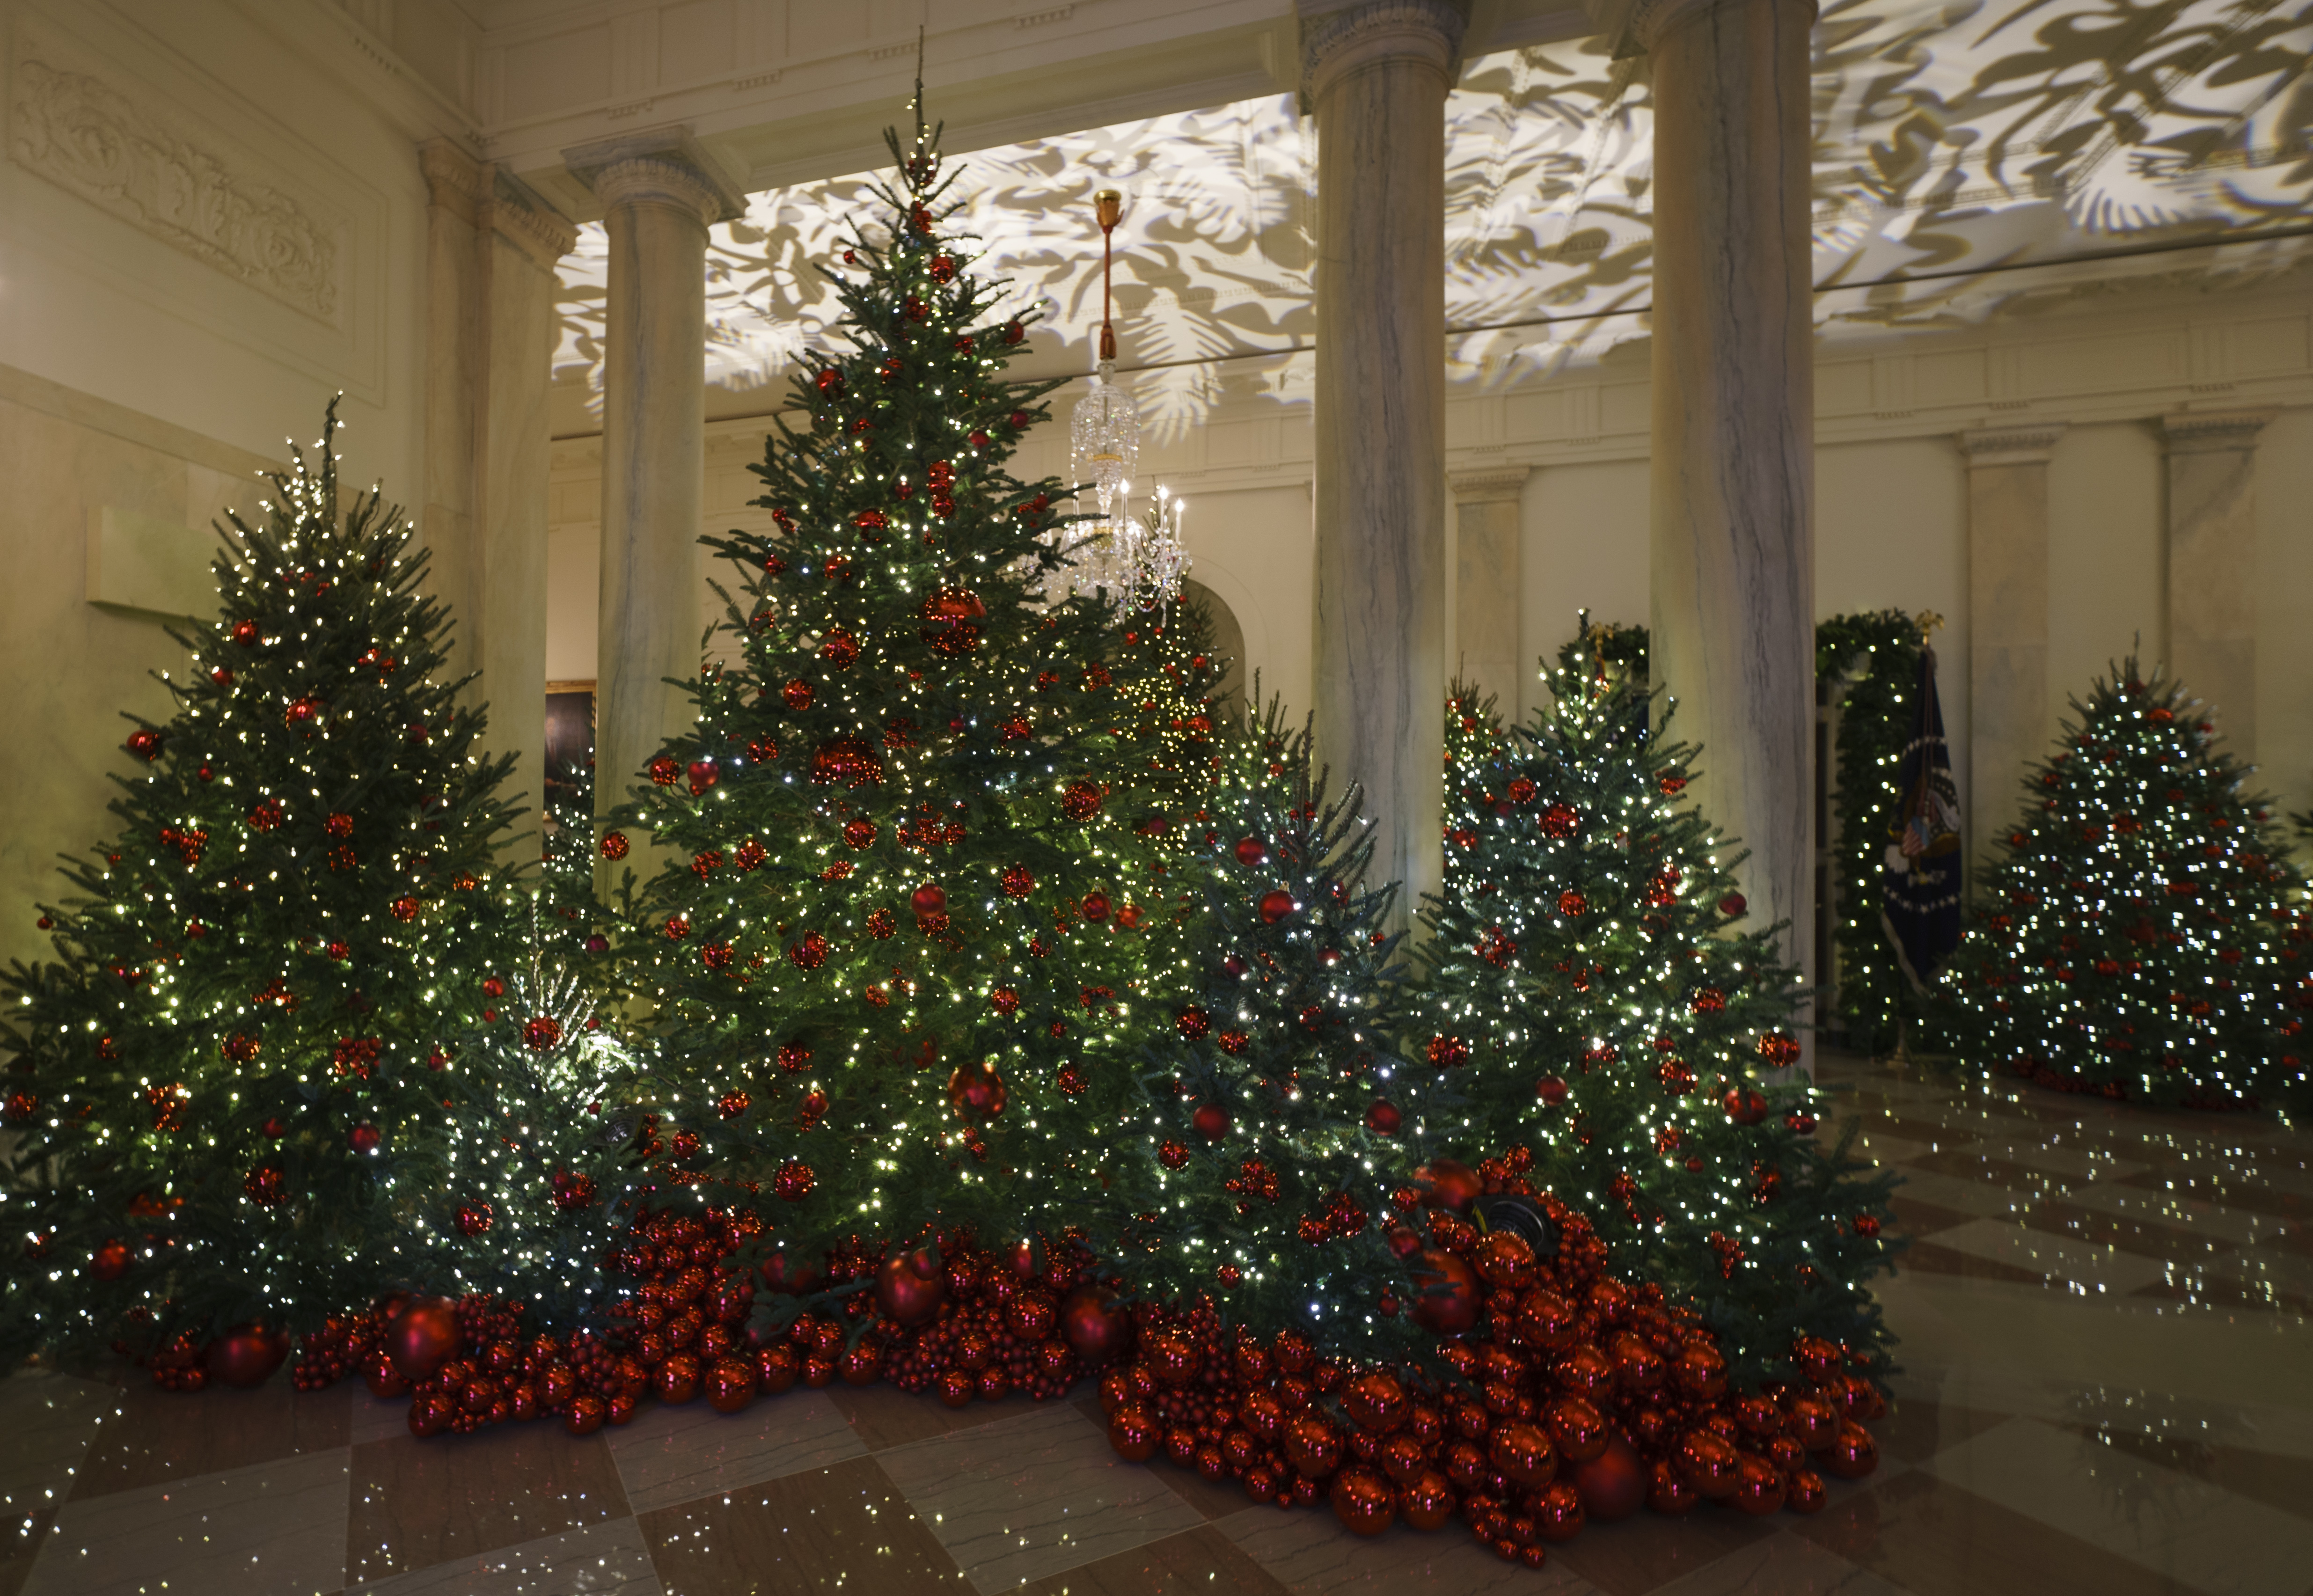 Christmas White House 2021 Sesame Street White House Christmas Decorations Red Trees May Symbolize Valor But Spur Ridicule Pennlive Com